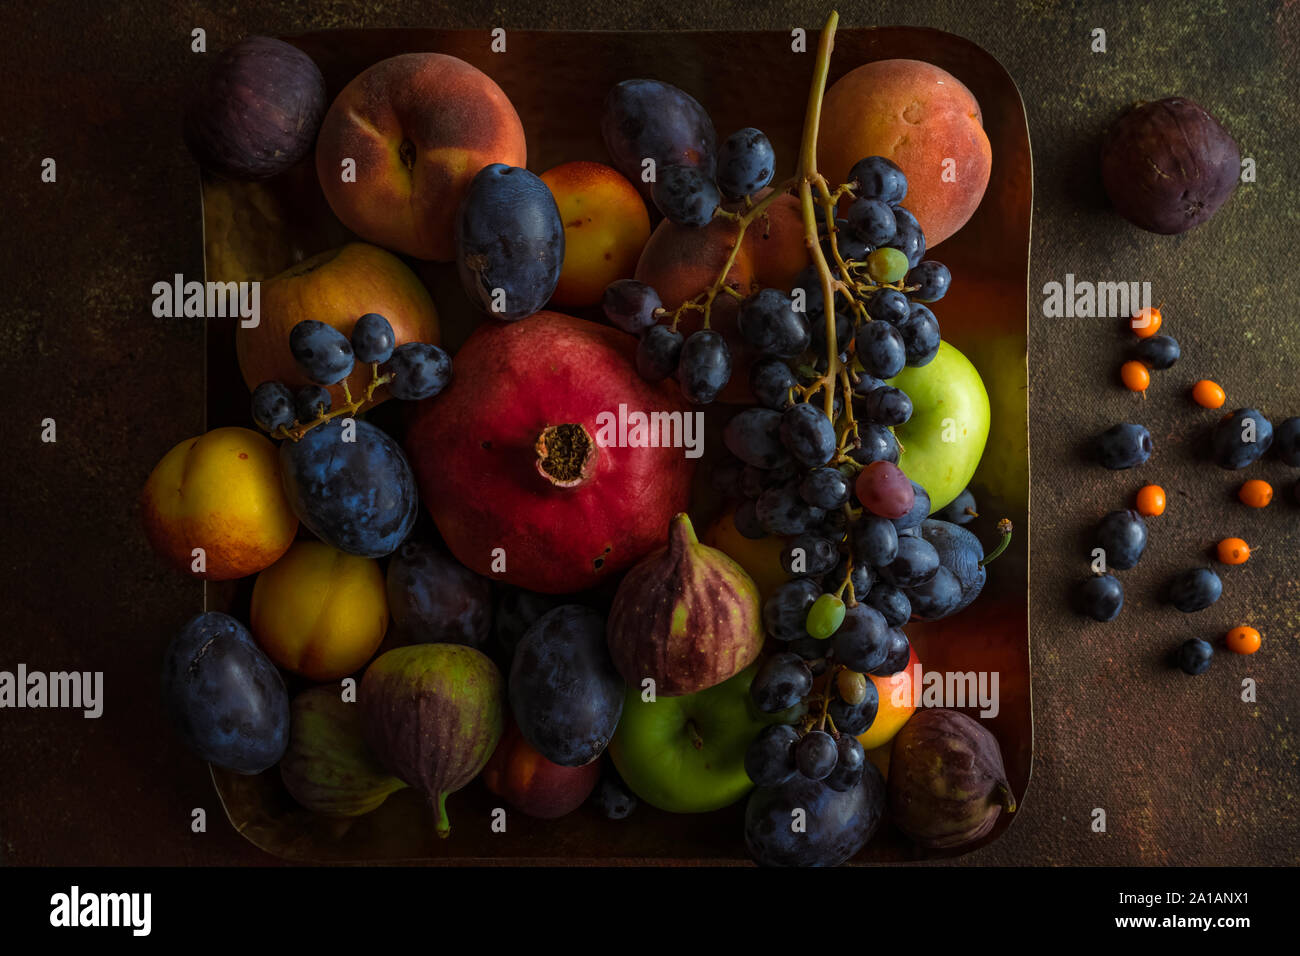 Variety Of Colourful Autumn Fruits Pomegranate Grapes Peaches Plums Apples Figs On Square Platter On Dark Background Horizontal Image Top View Stock Photo Alamy